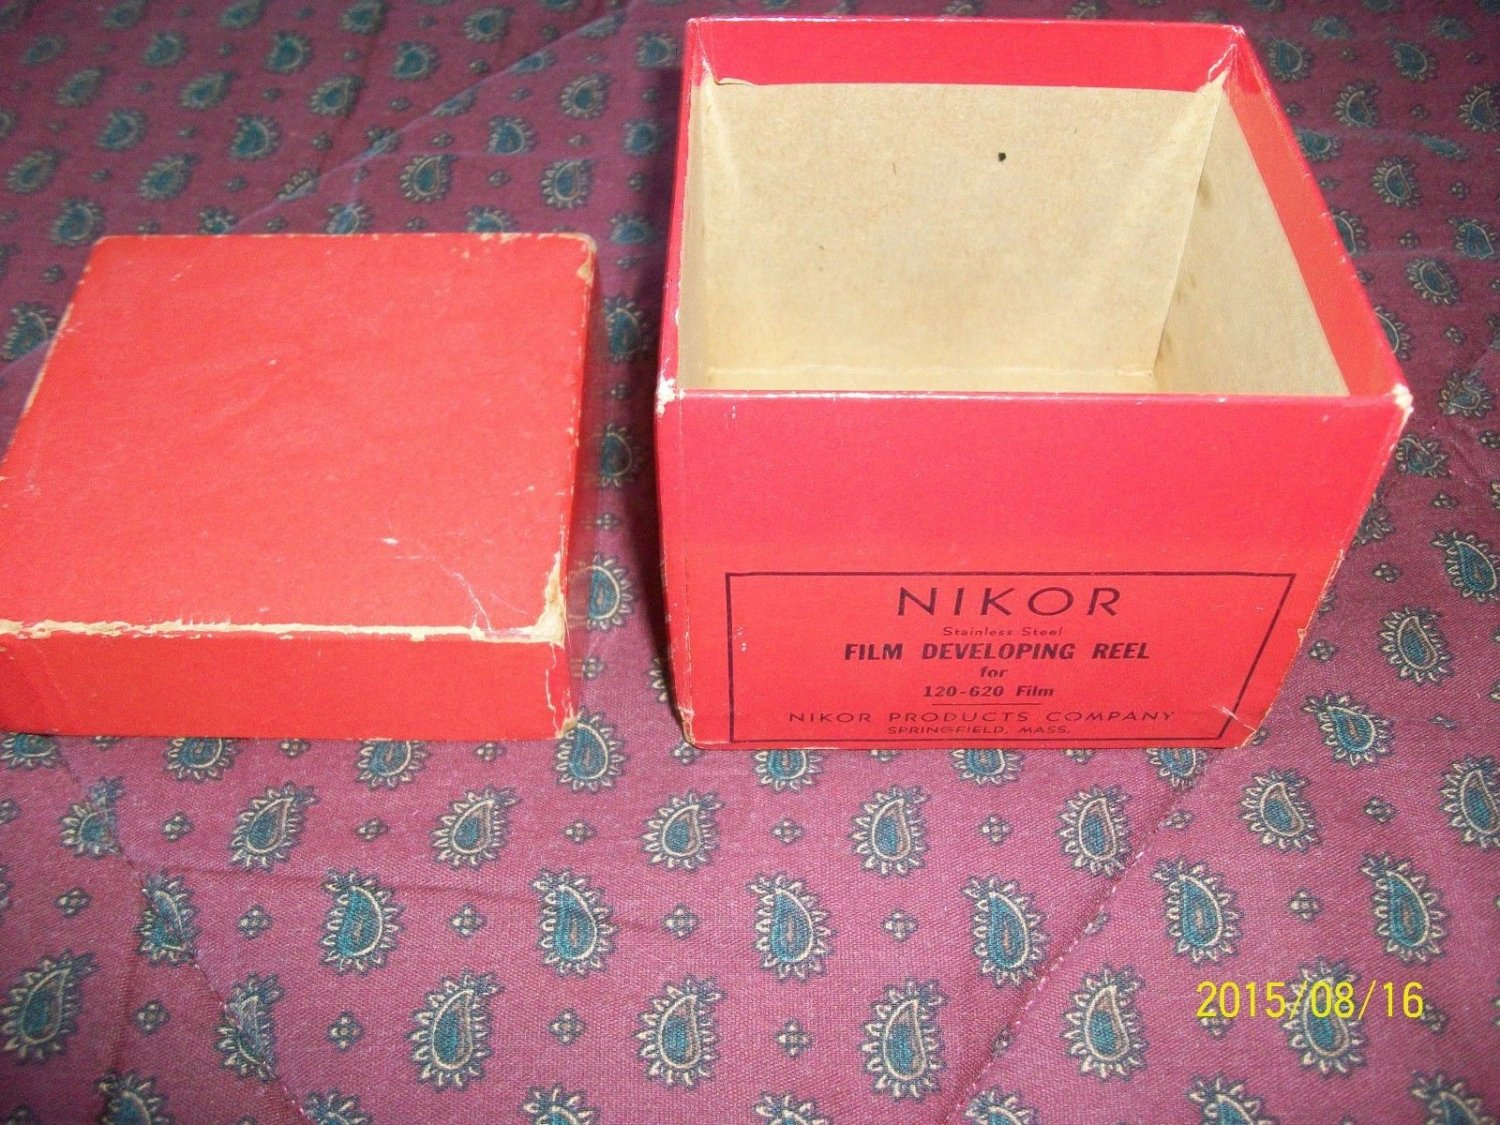 NIKOR Empty BOX for Film Developing Reel - original vintage